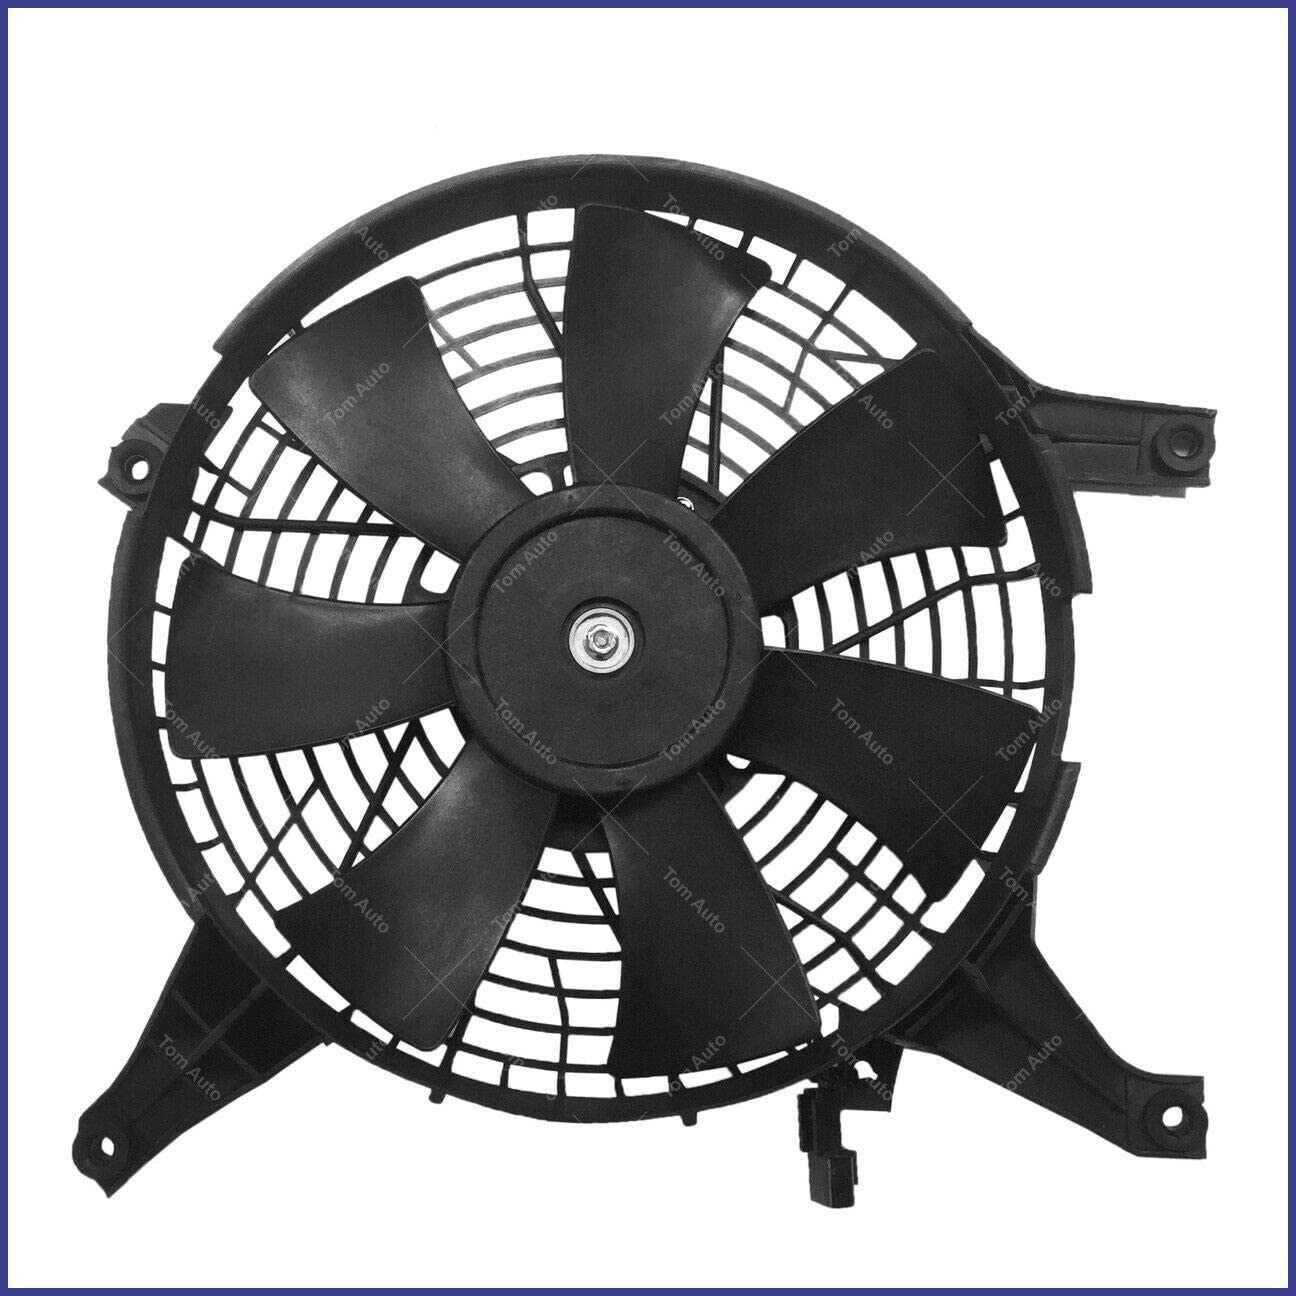 Сompatible for New Radiator Cooling Fan Assembly for Mitsubishi Montero 3.8L V6 2004-2008